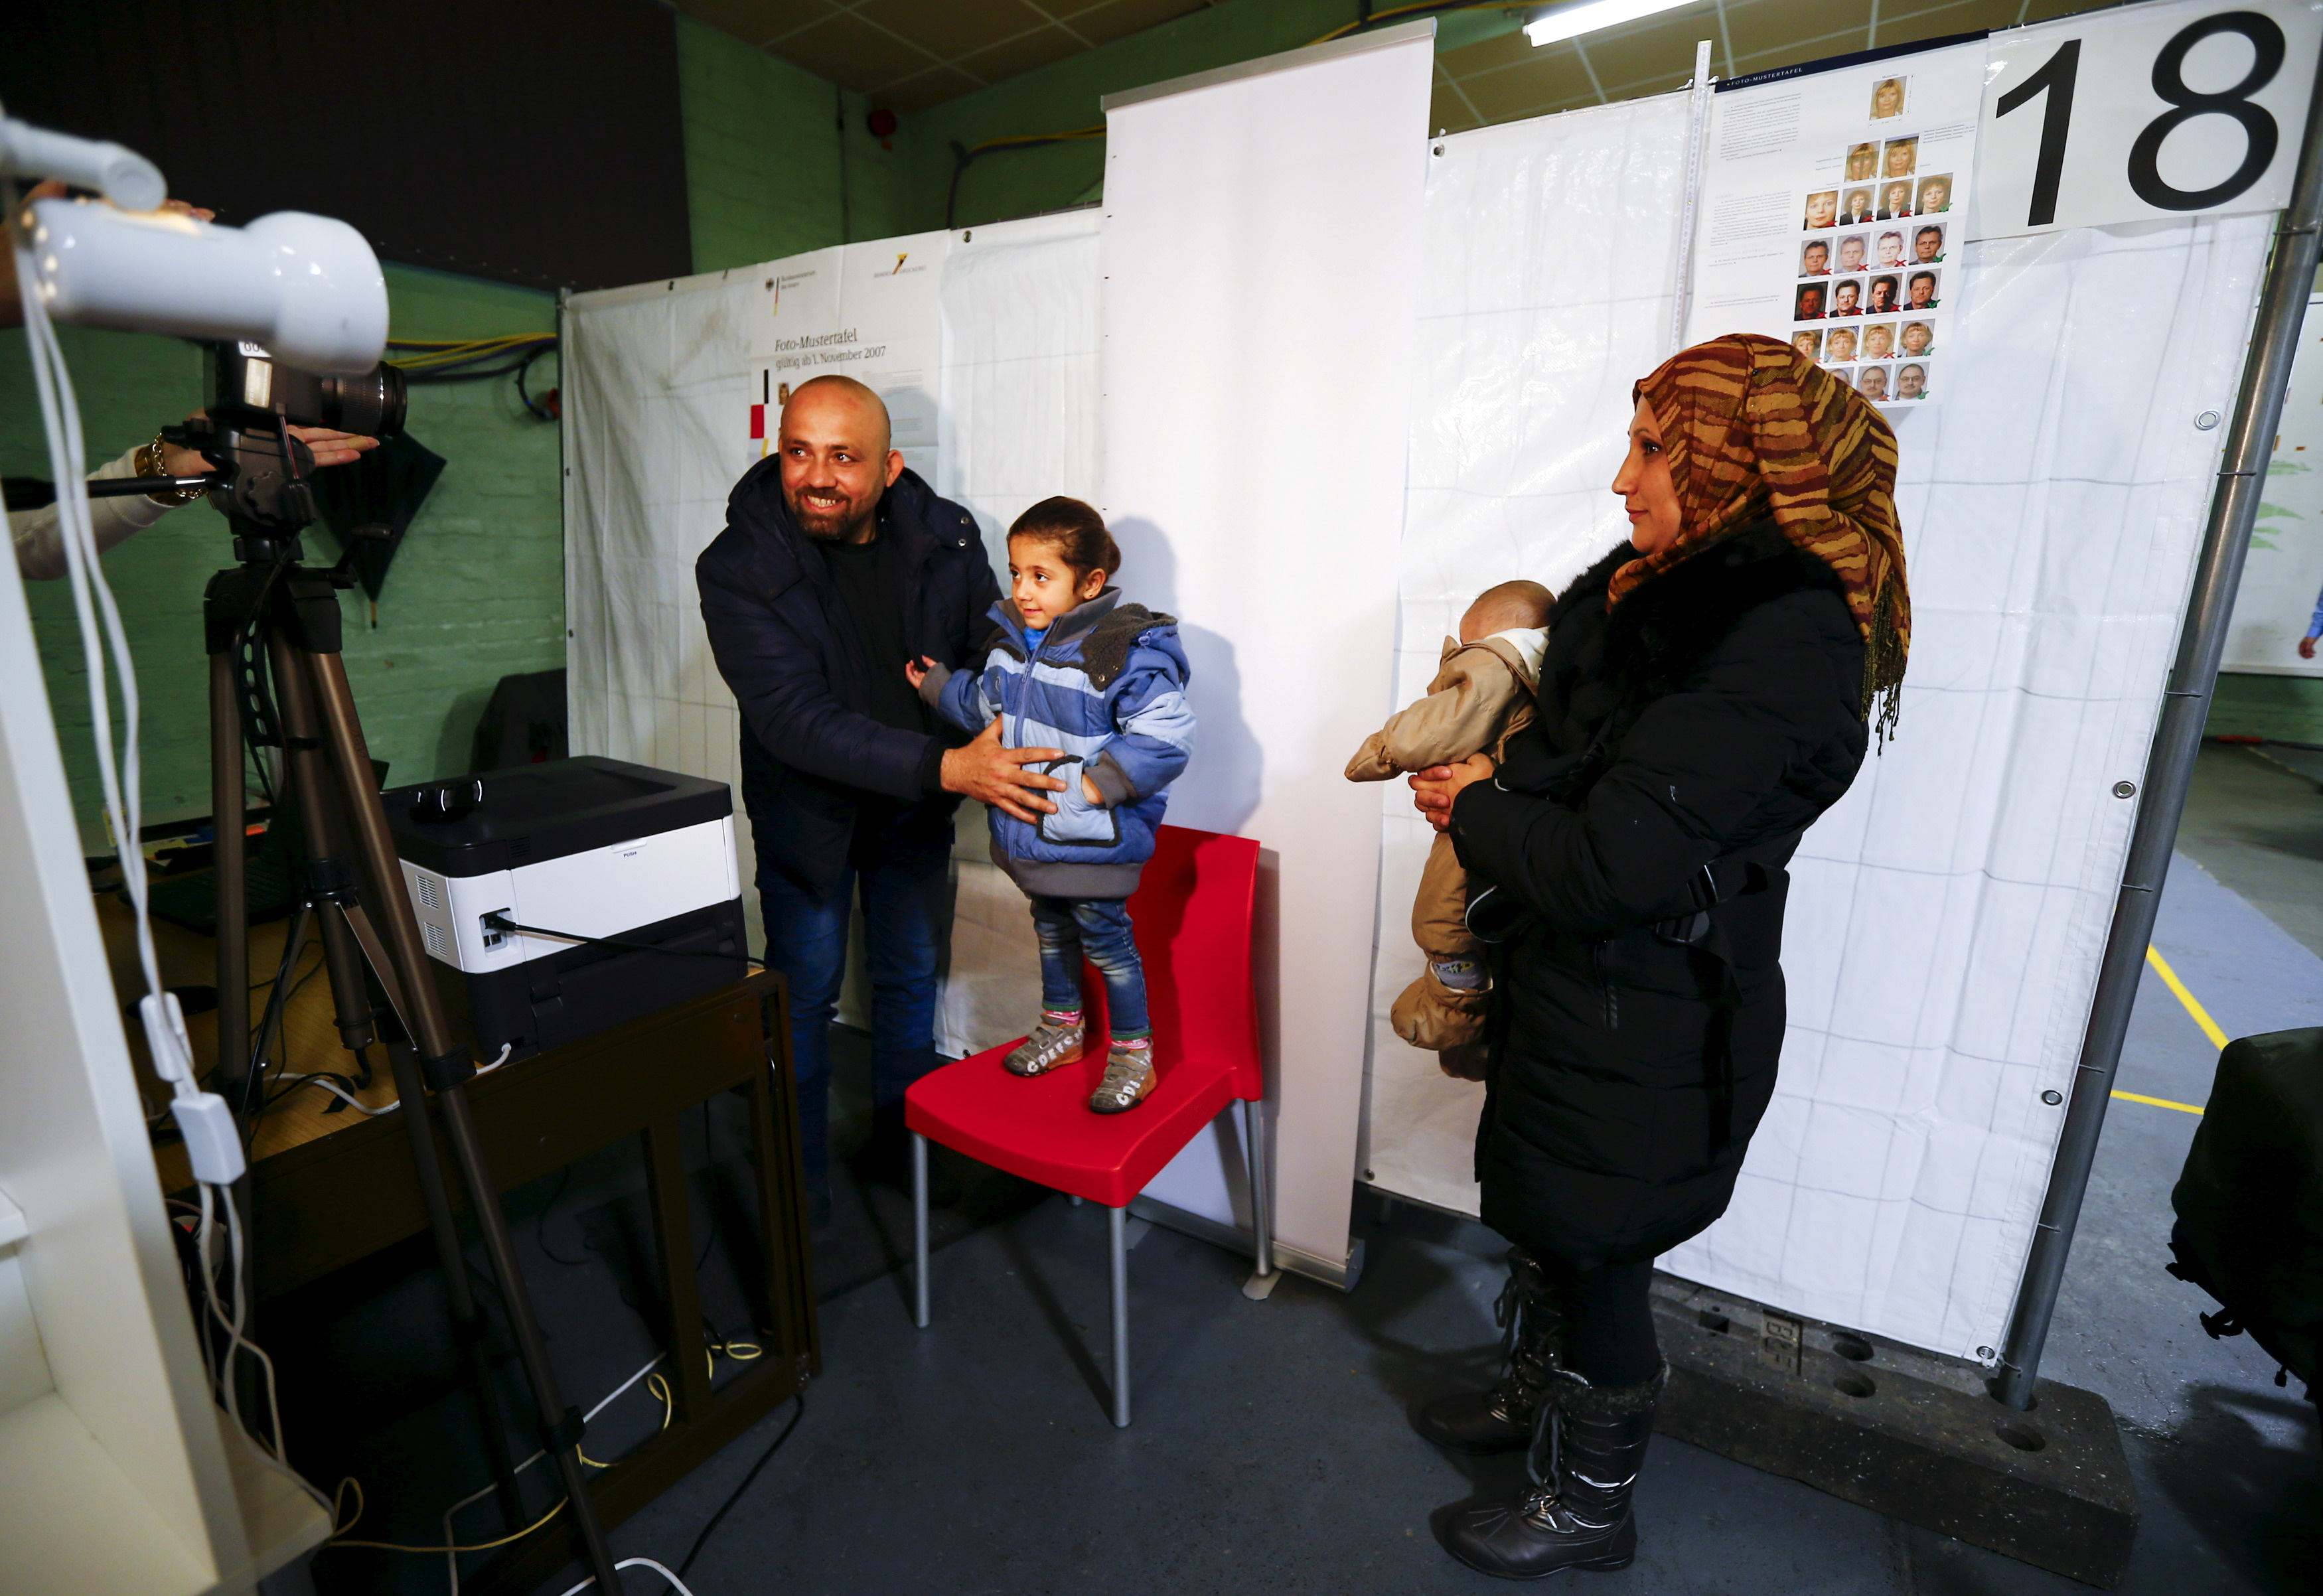 Three year-old Syrian girl Malak stands on a chair for a registration image as her parents Wafy Al-Hamoud Alkhaldy, 36, and his wife Asma Al Saleh, 33, from the eastern Syrian town of Deir ez-Zor are being registered for the so-called